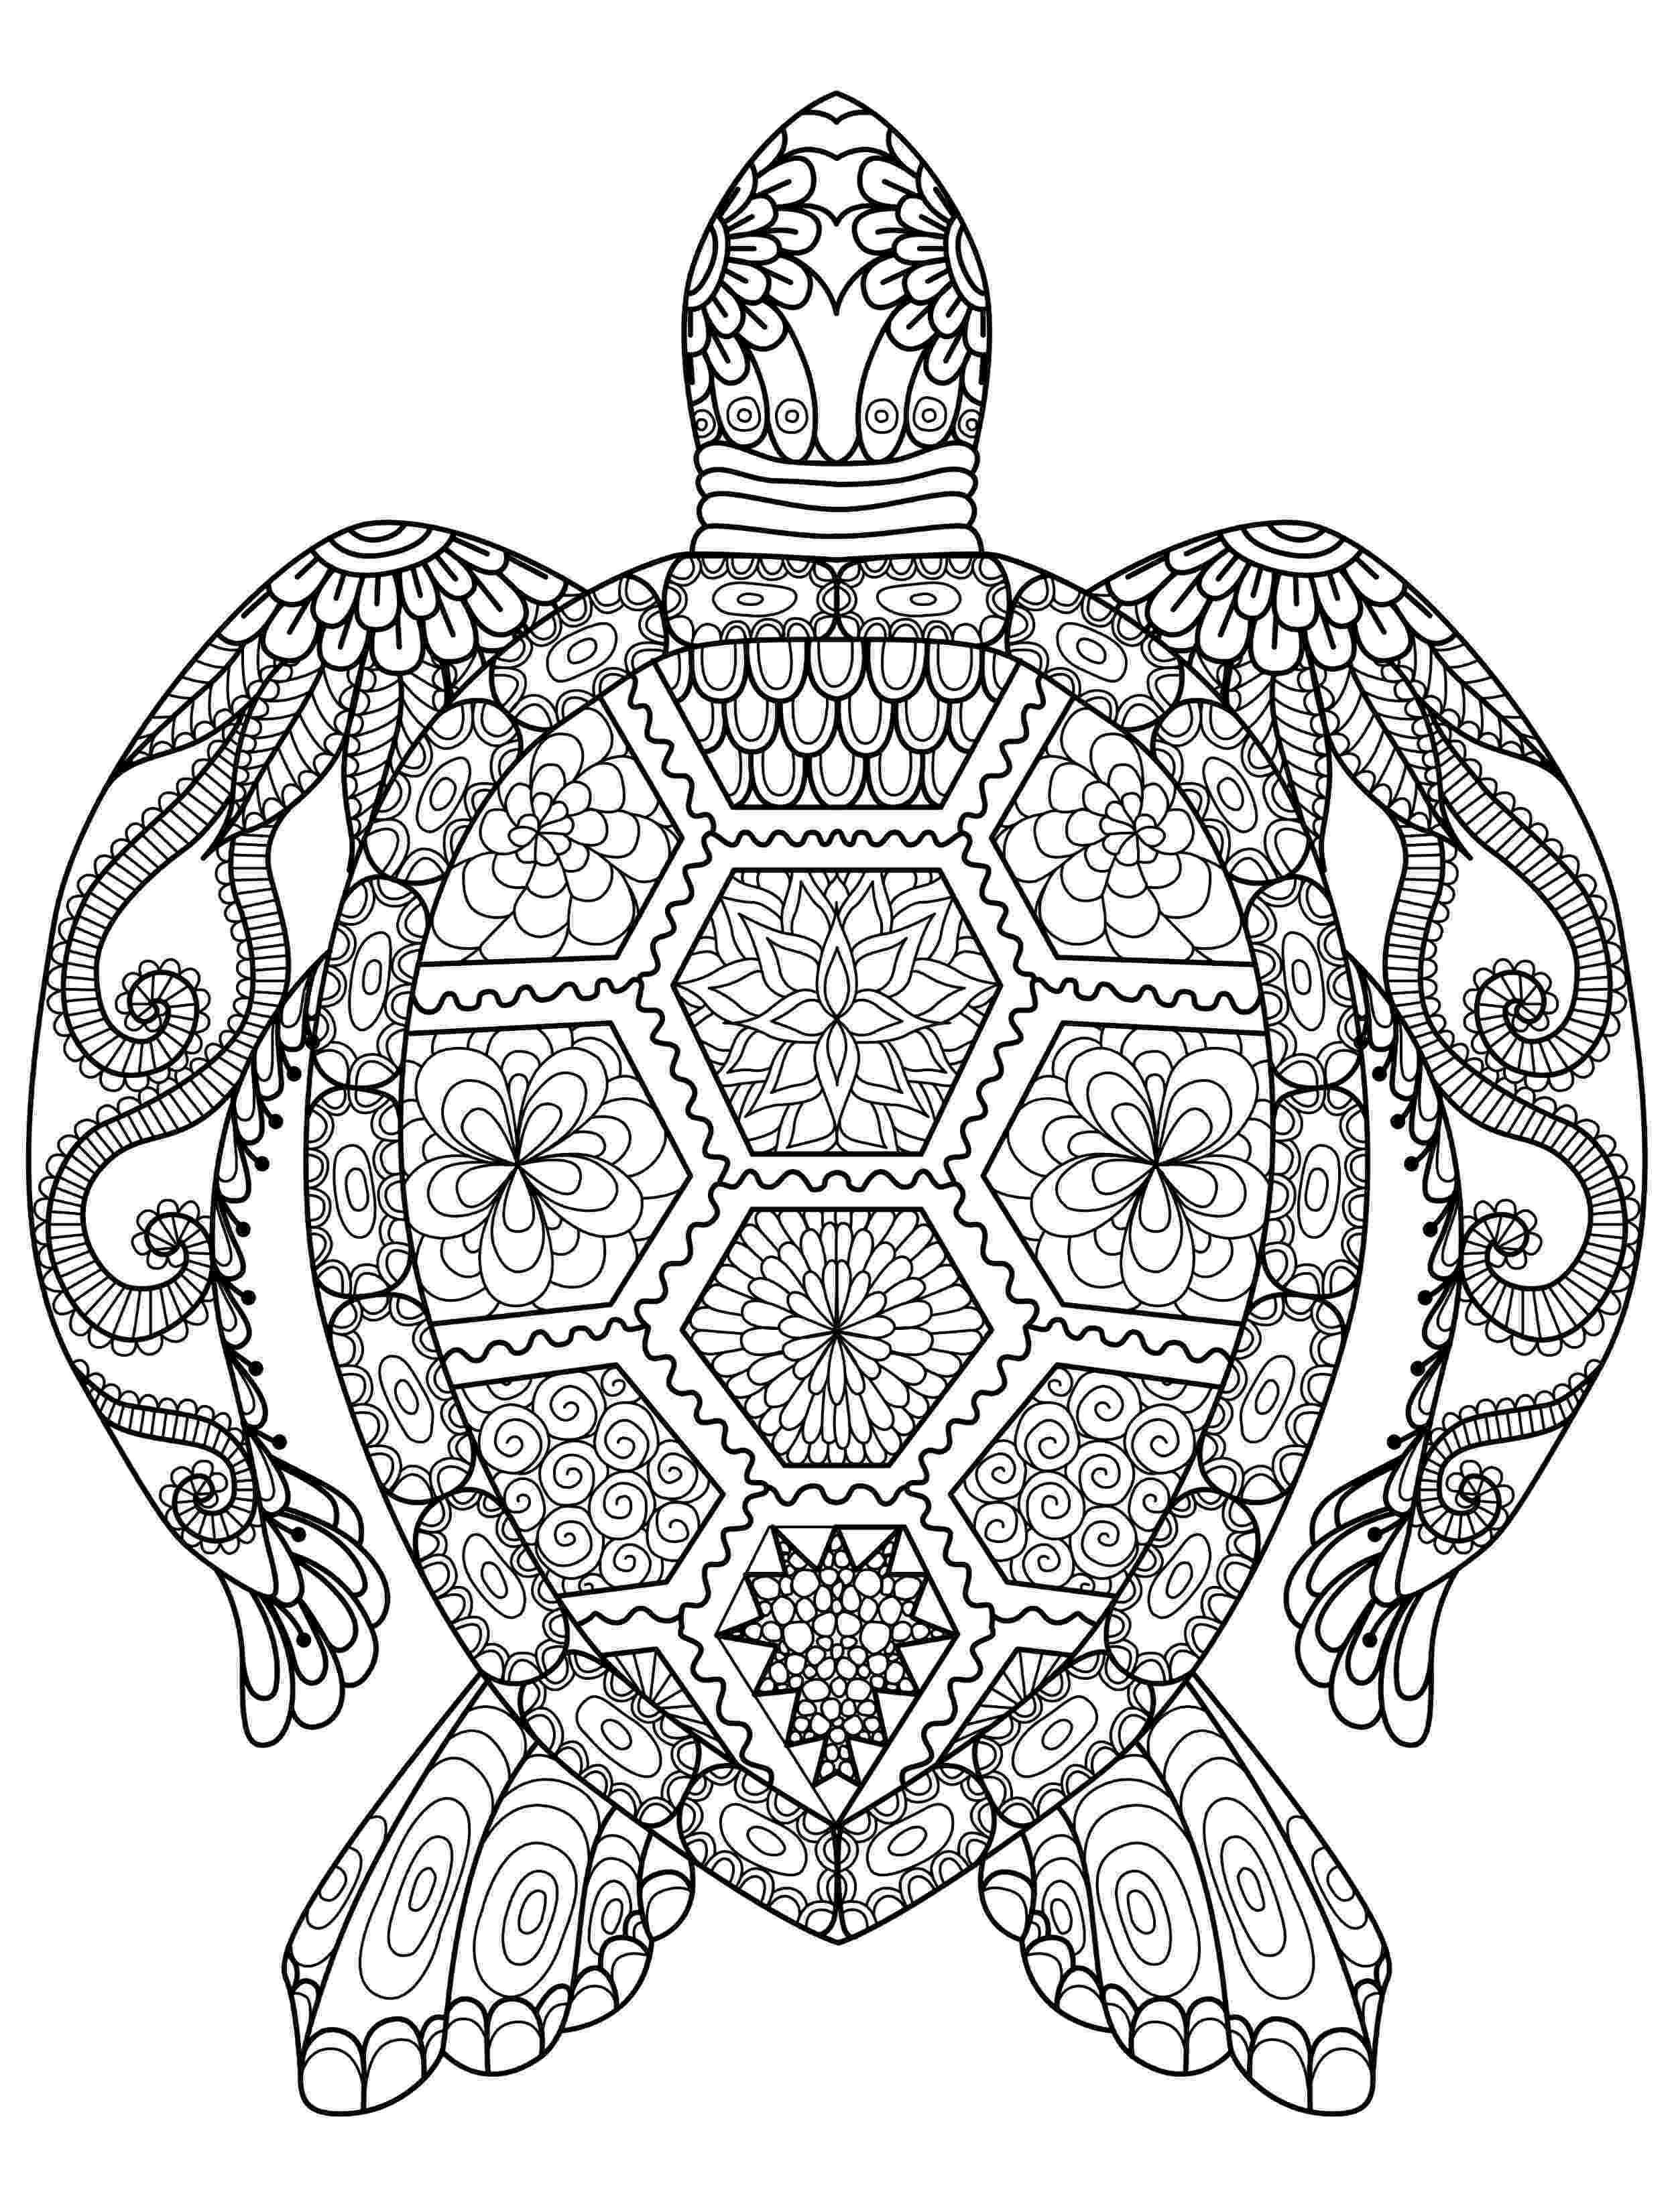 animal coloring pages to print adult coloring pages animals best coloring pages for kids print to animal coloring pages